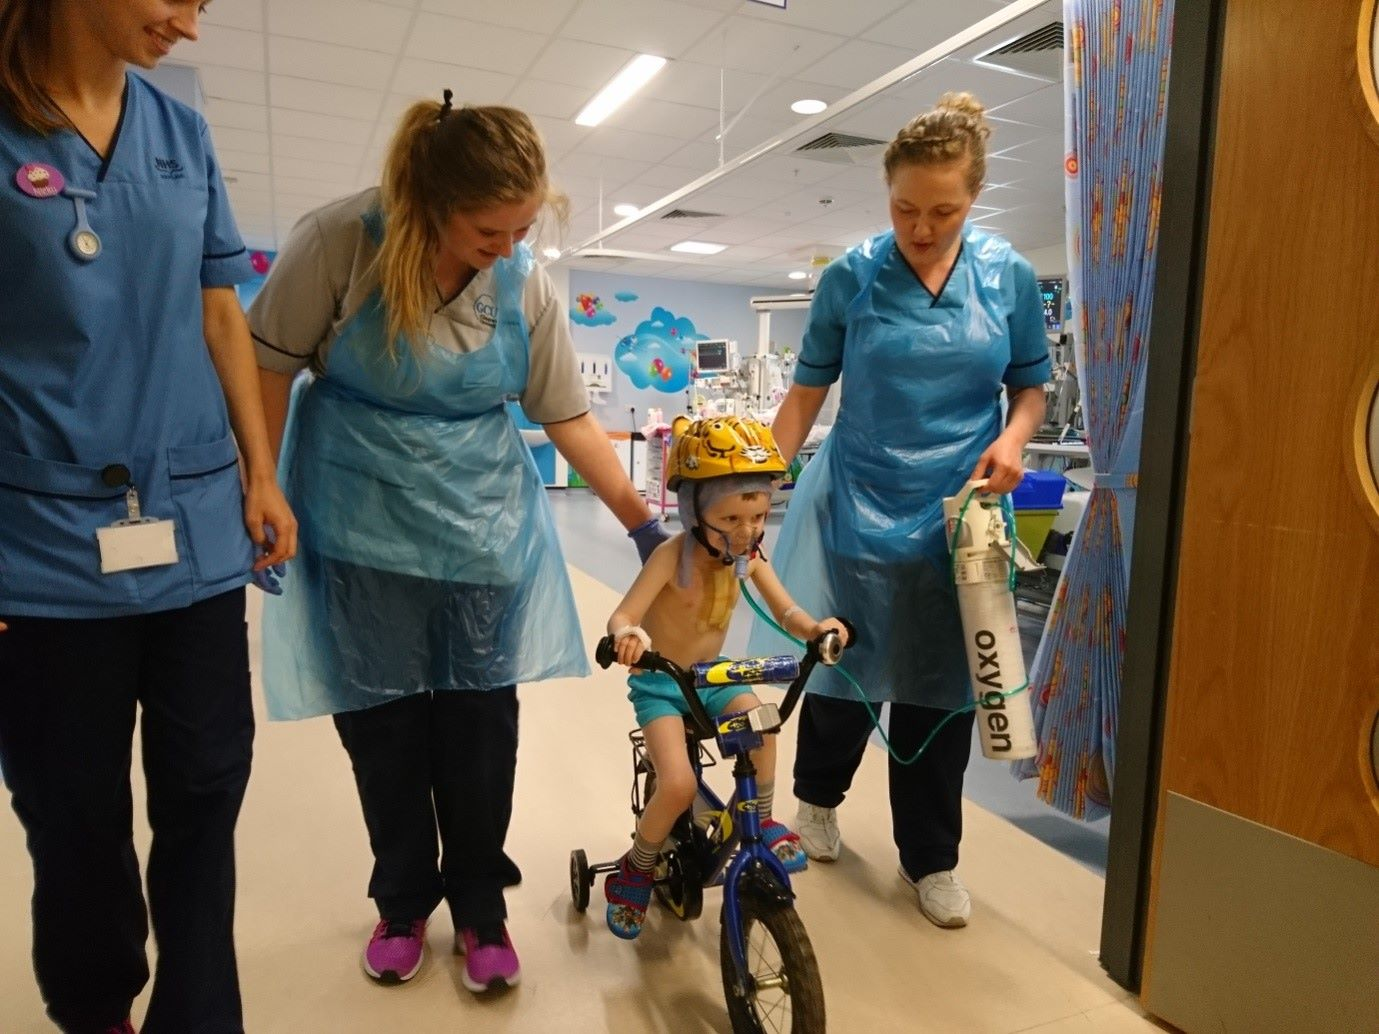 Nurses helping a young child to ride their bike in a hospital